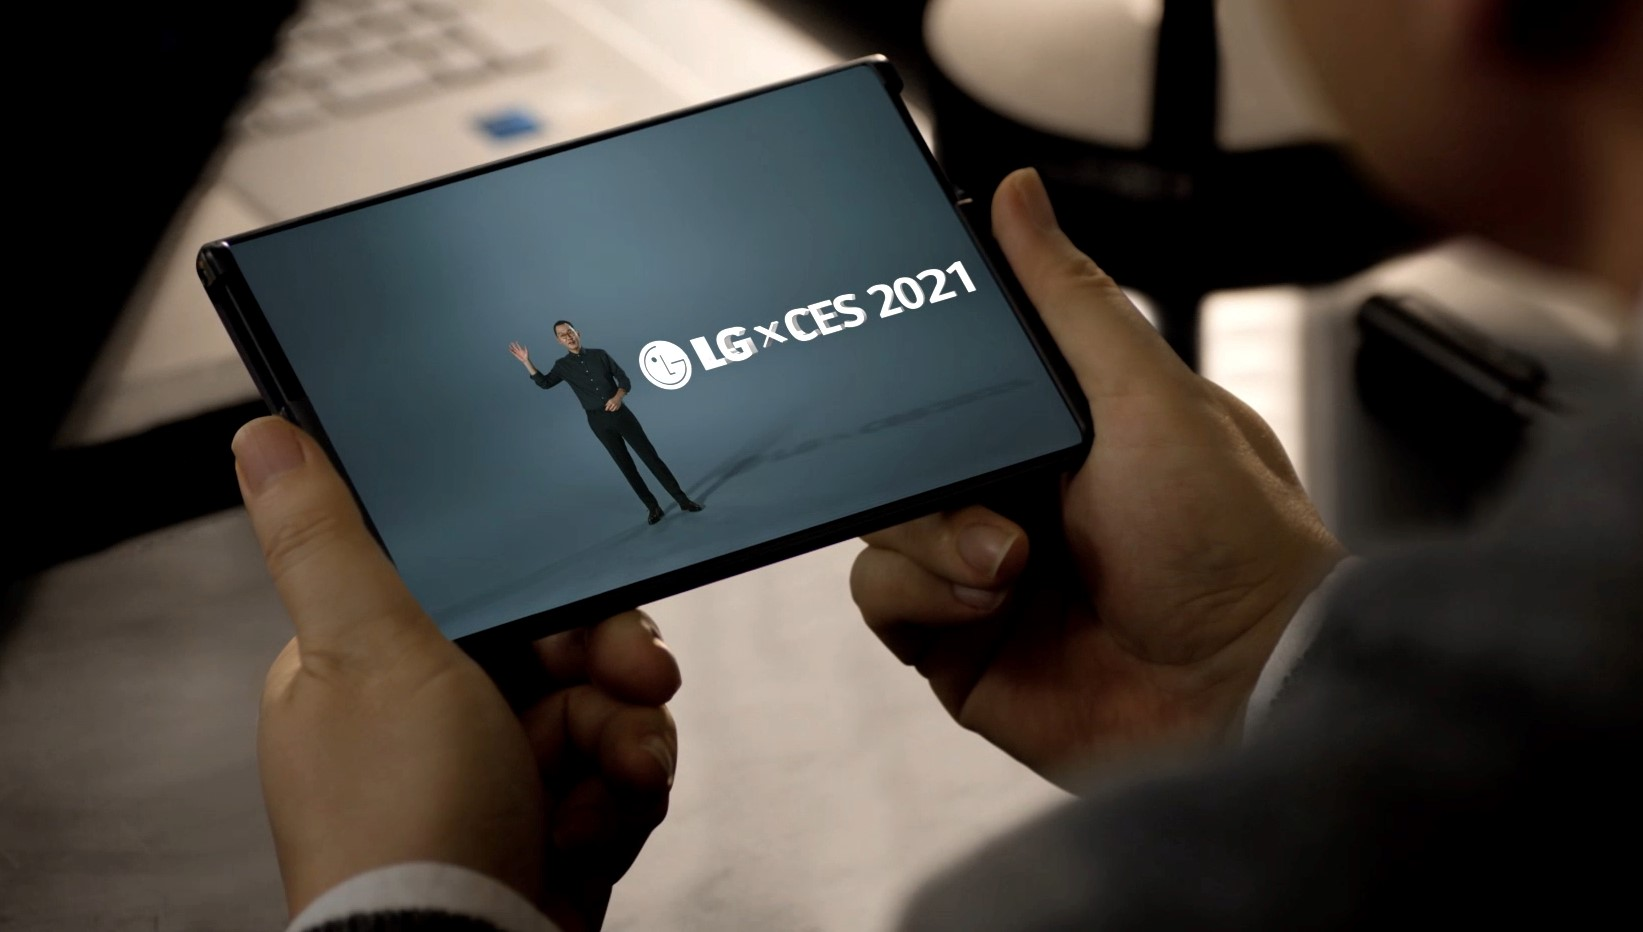 Watch LG's CES event in 9 minutes